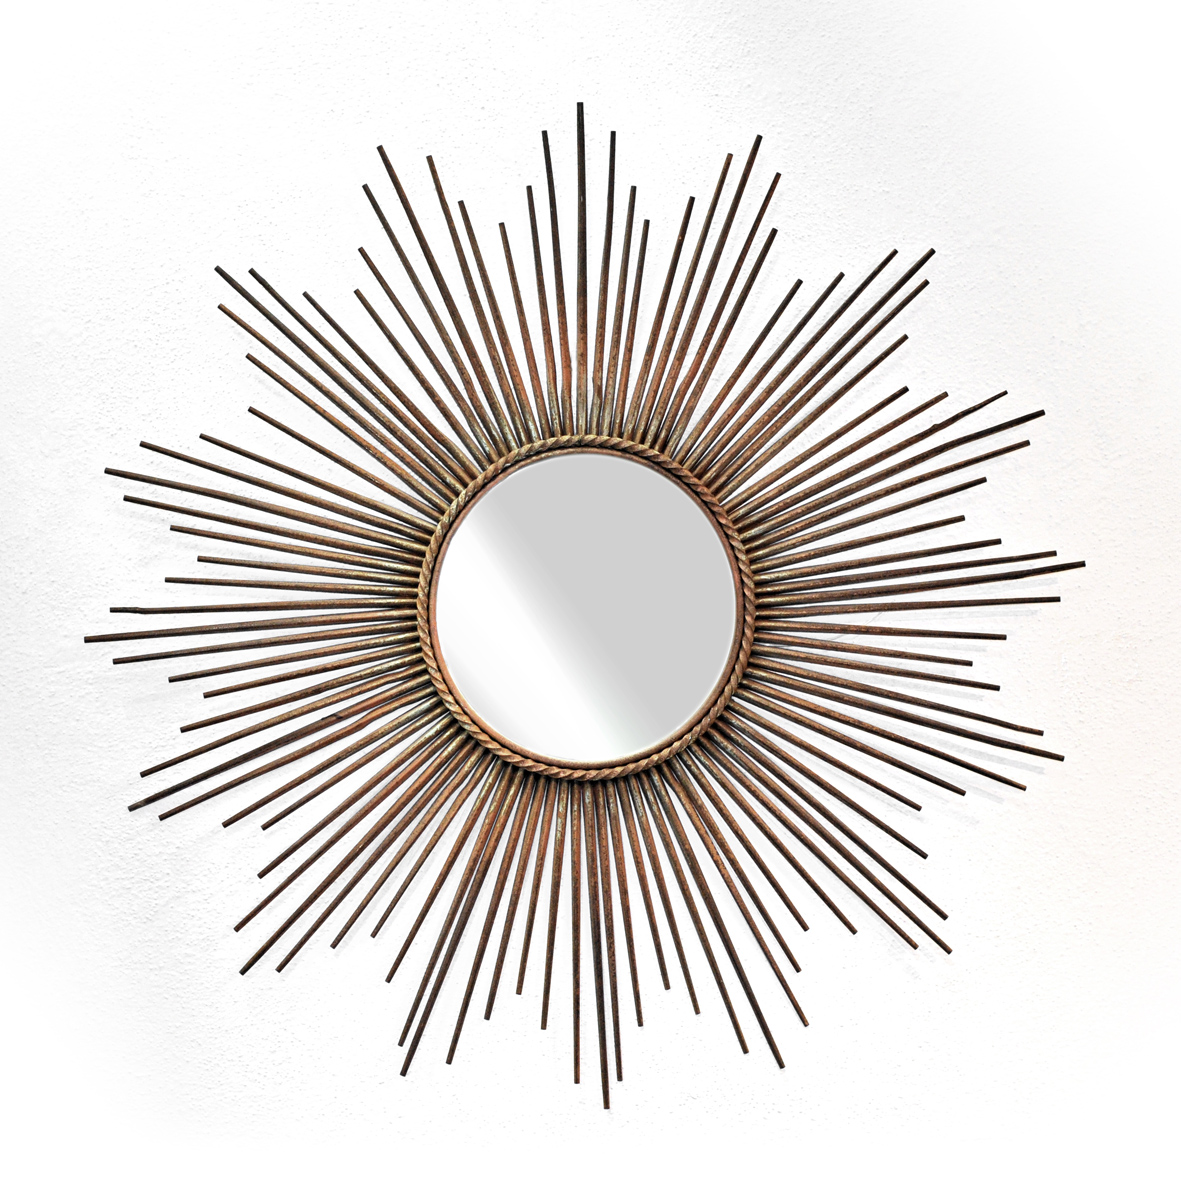 Sunburst mirror by chaty of vallauris per seper se for Chaty vallauris miroir